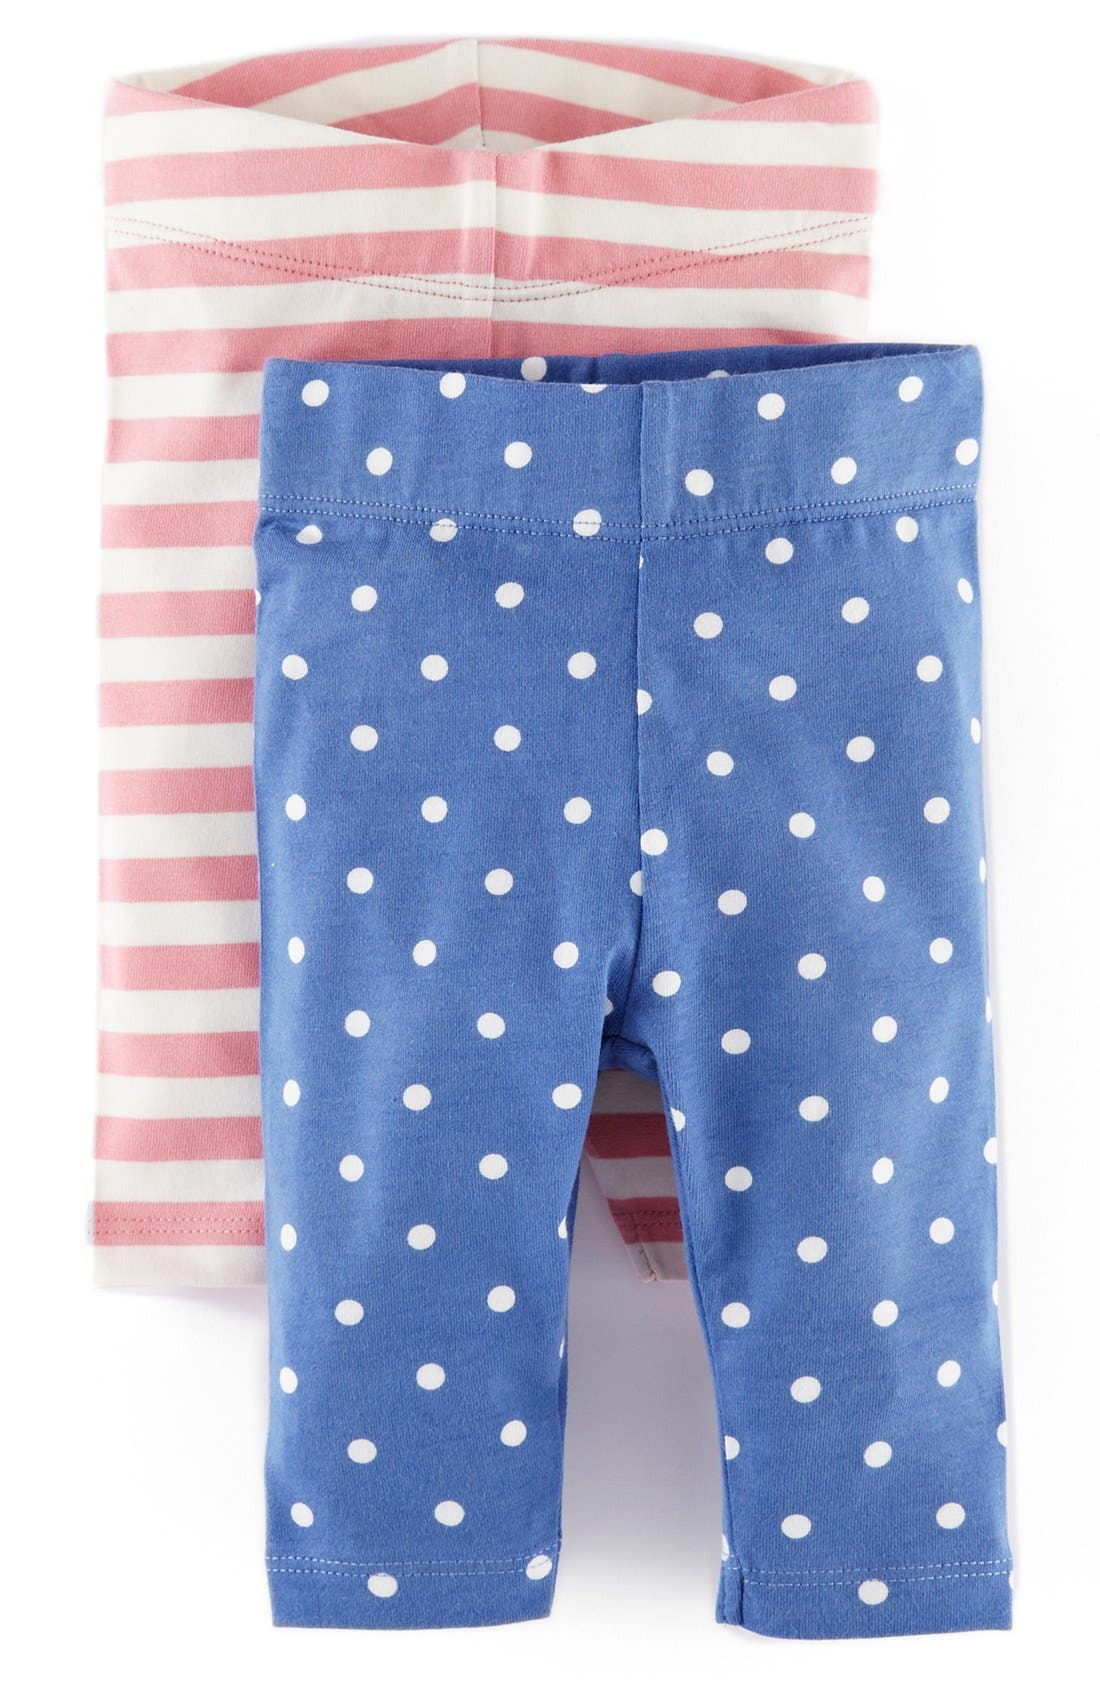 Alternate Image 1 Selected - Mini Boden Print Leggings (2-Pack) (Baby Girls)